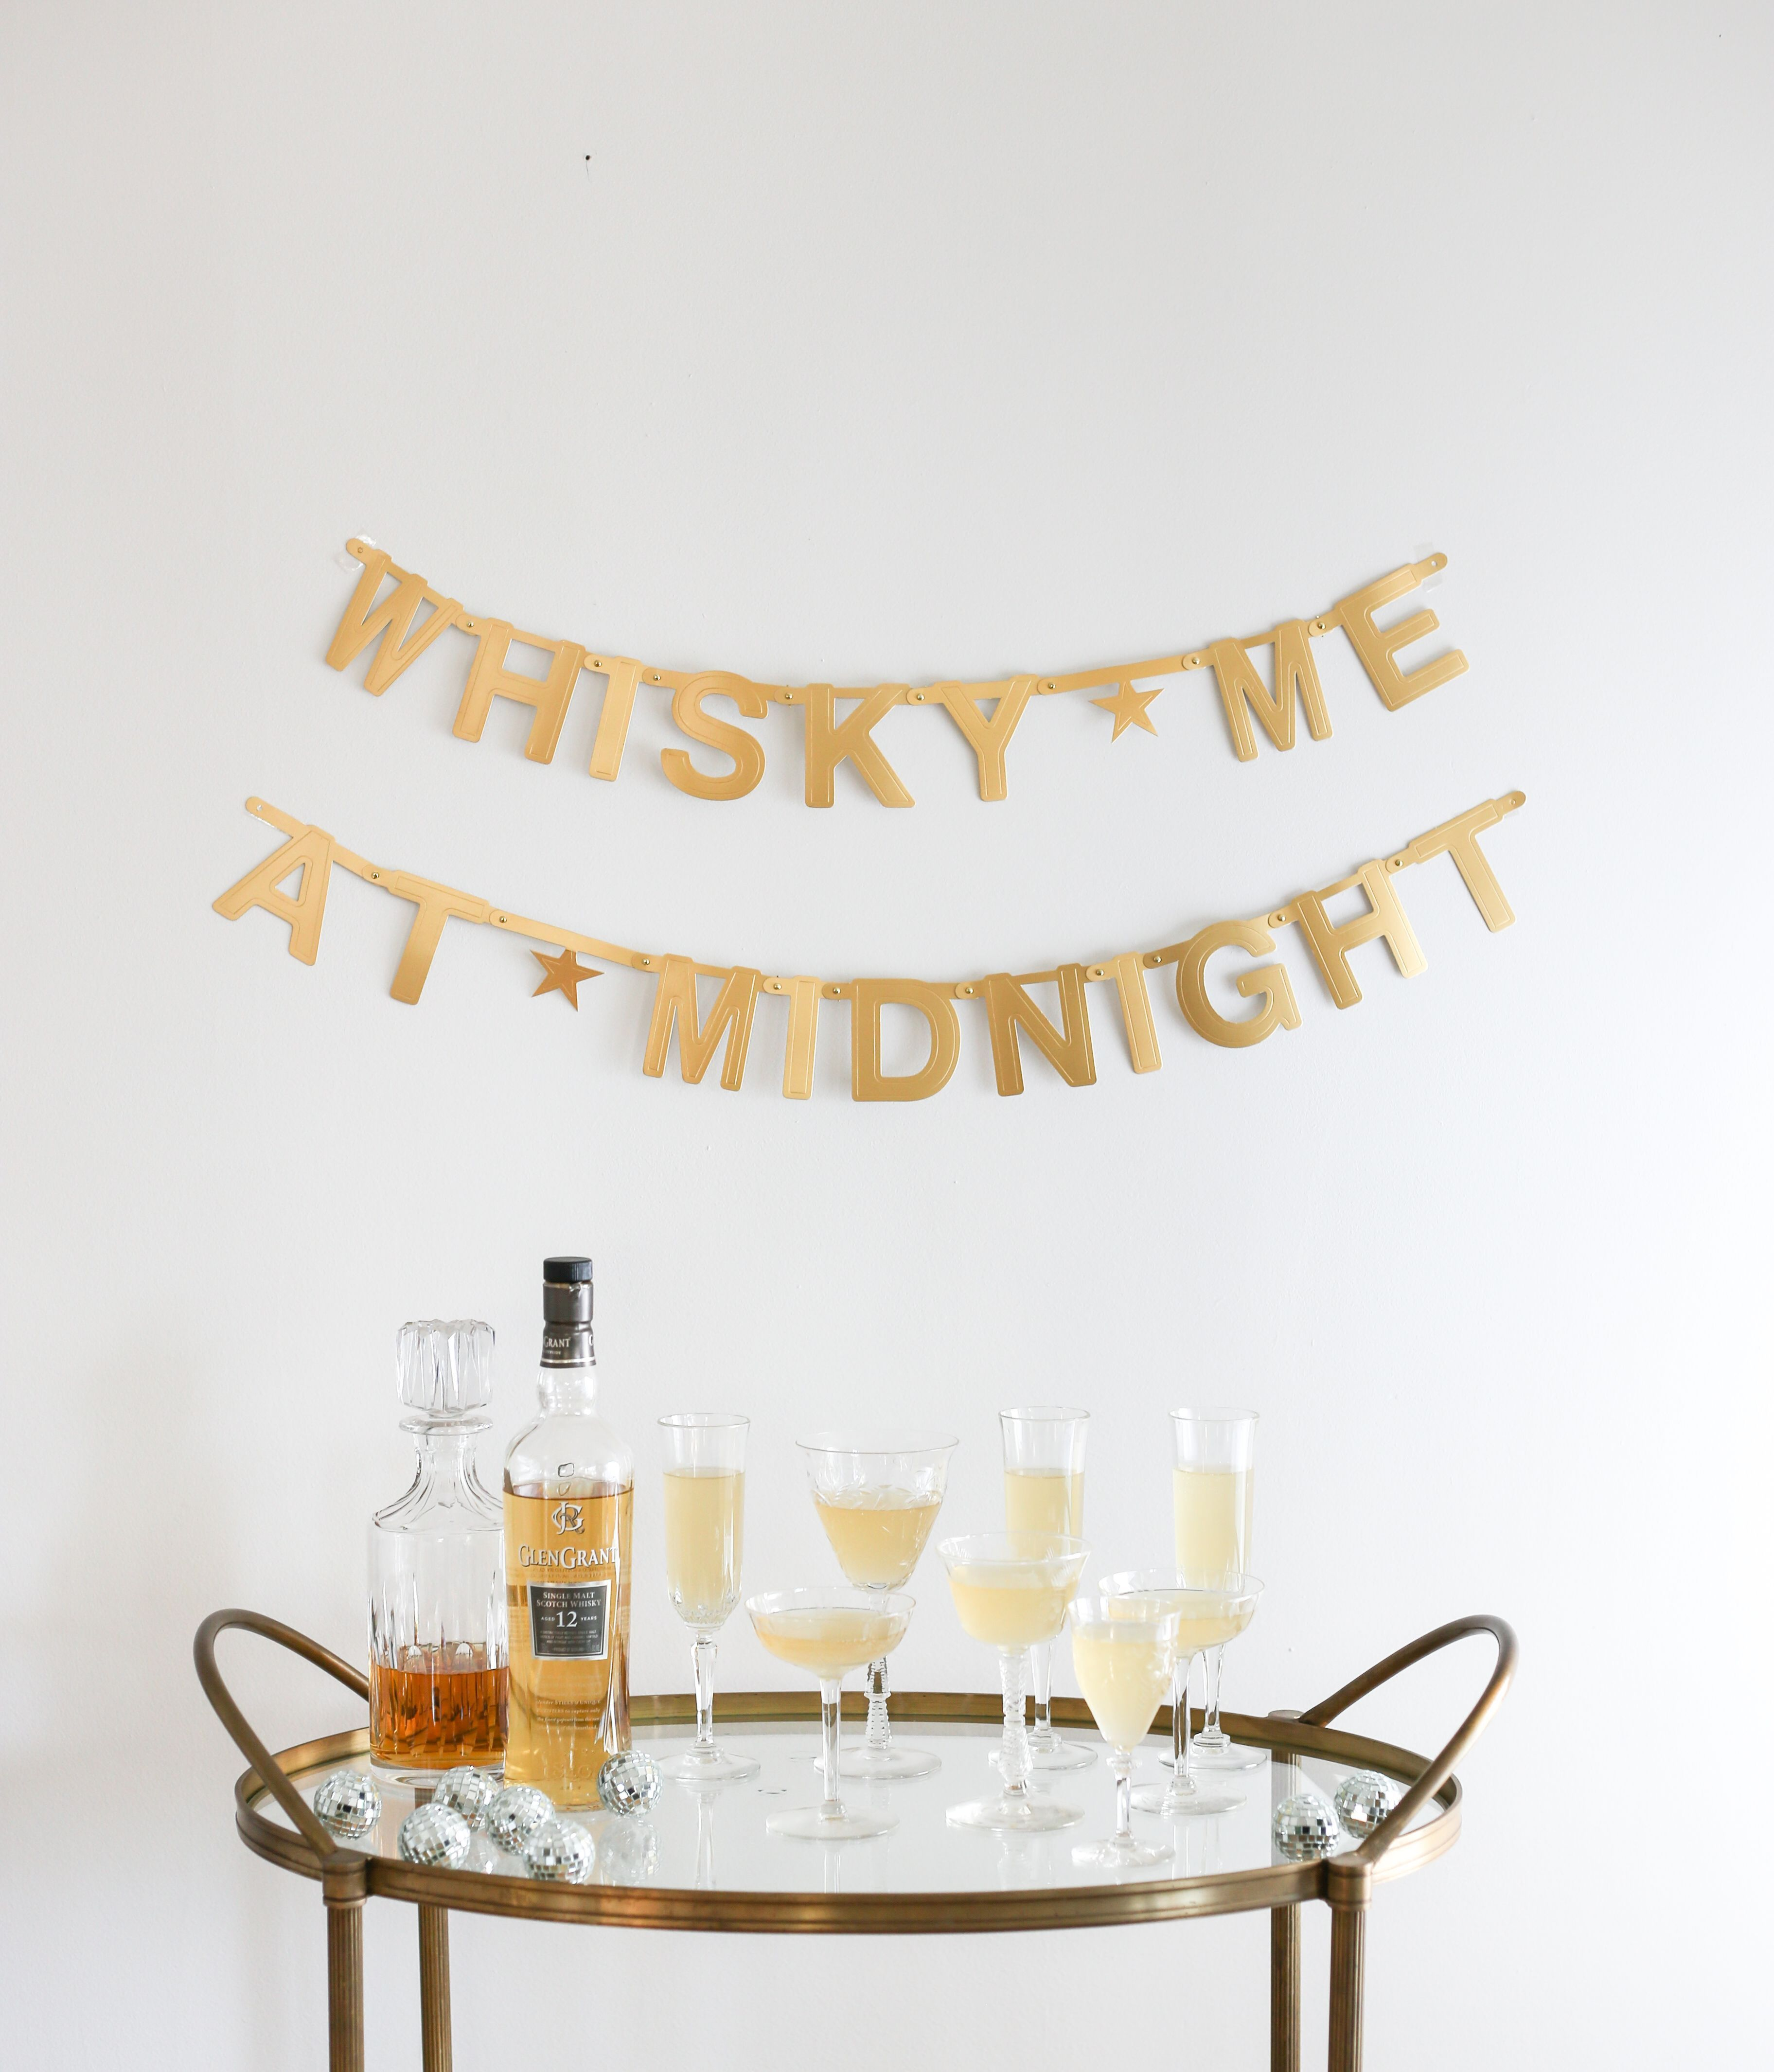 #Whisky me at midnight! We're looking forward to all the new fun cocktails #2018 will bring! #HappyNewYear #whiskydrinks